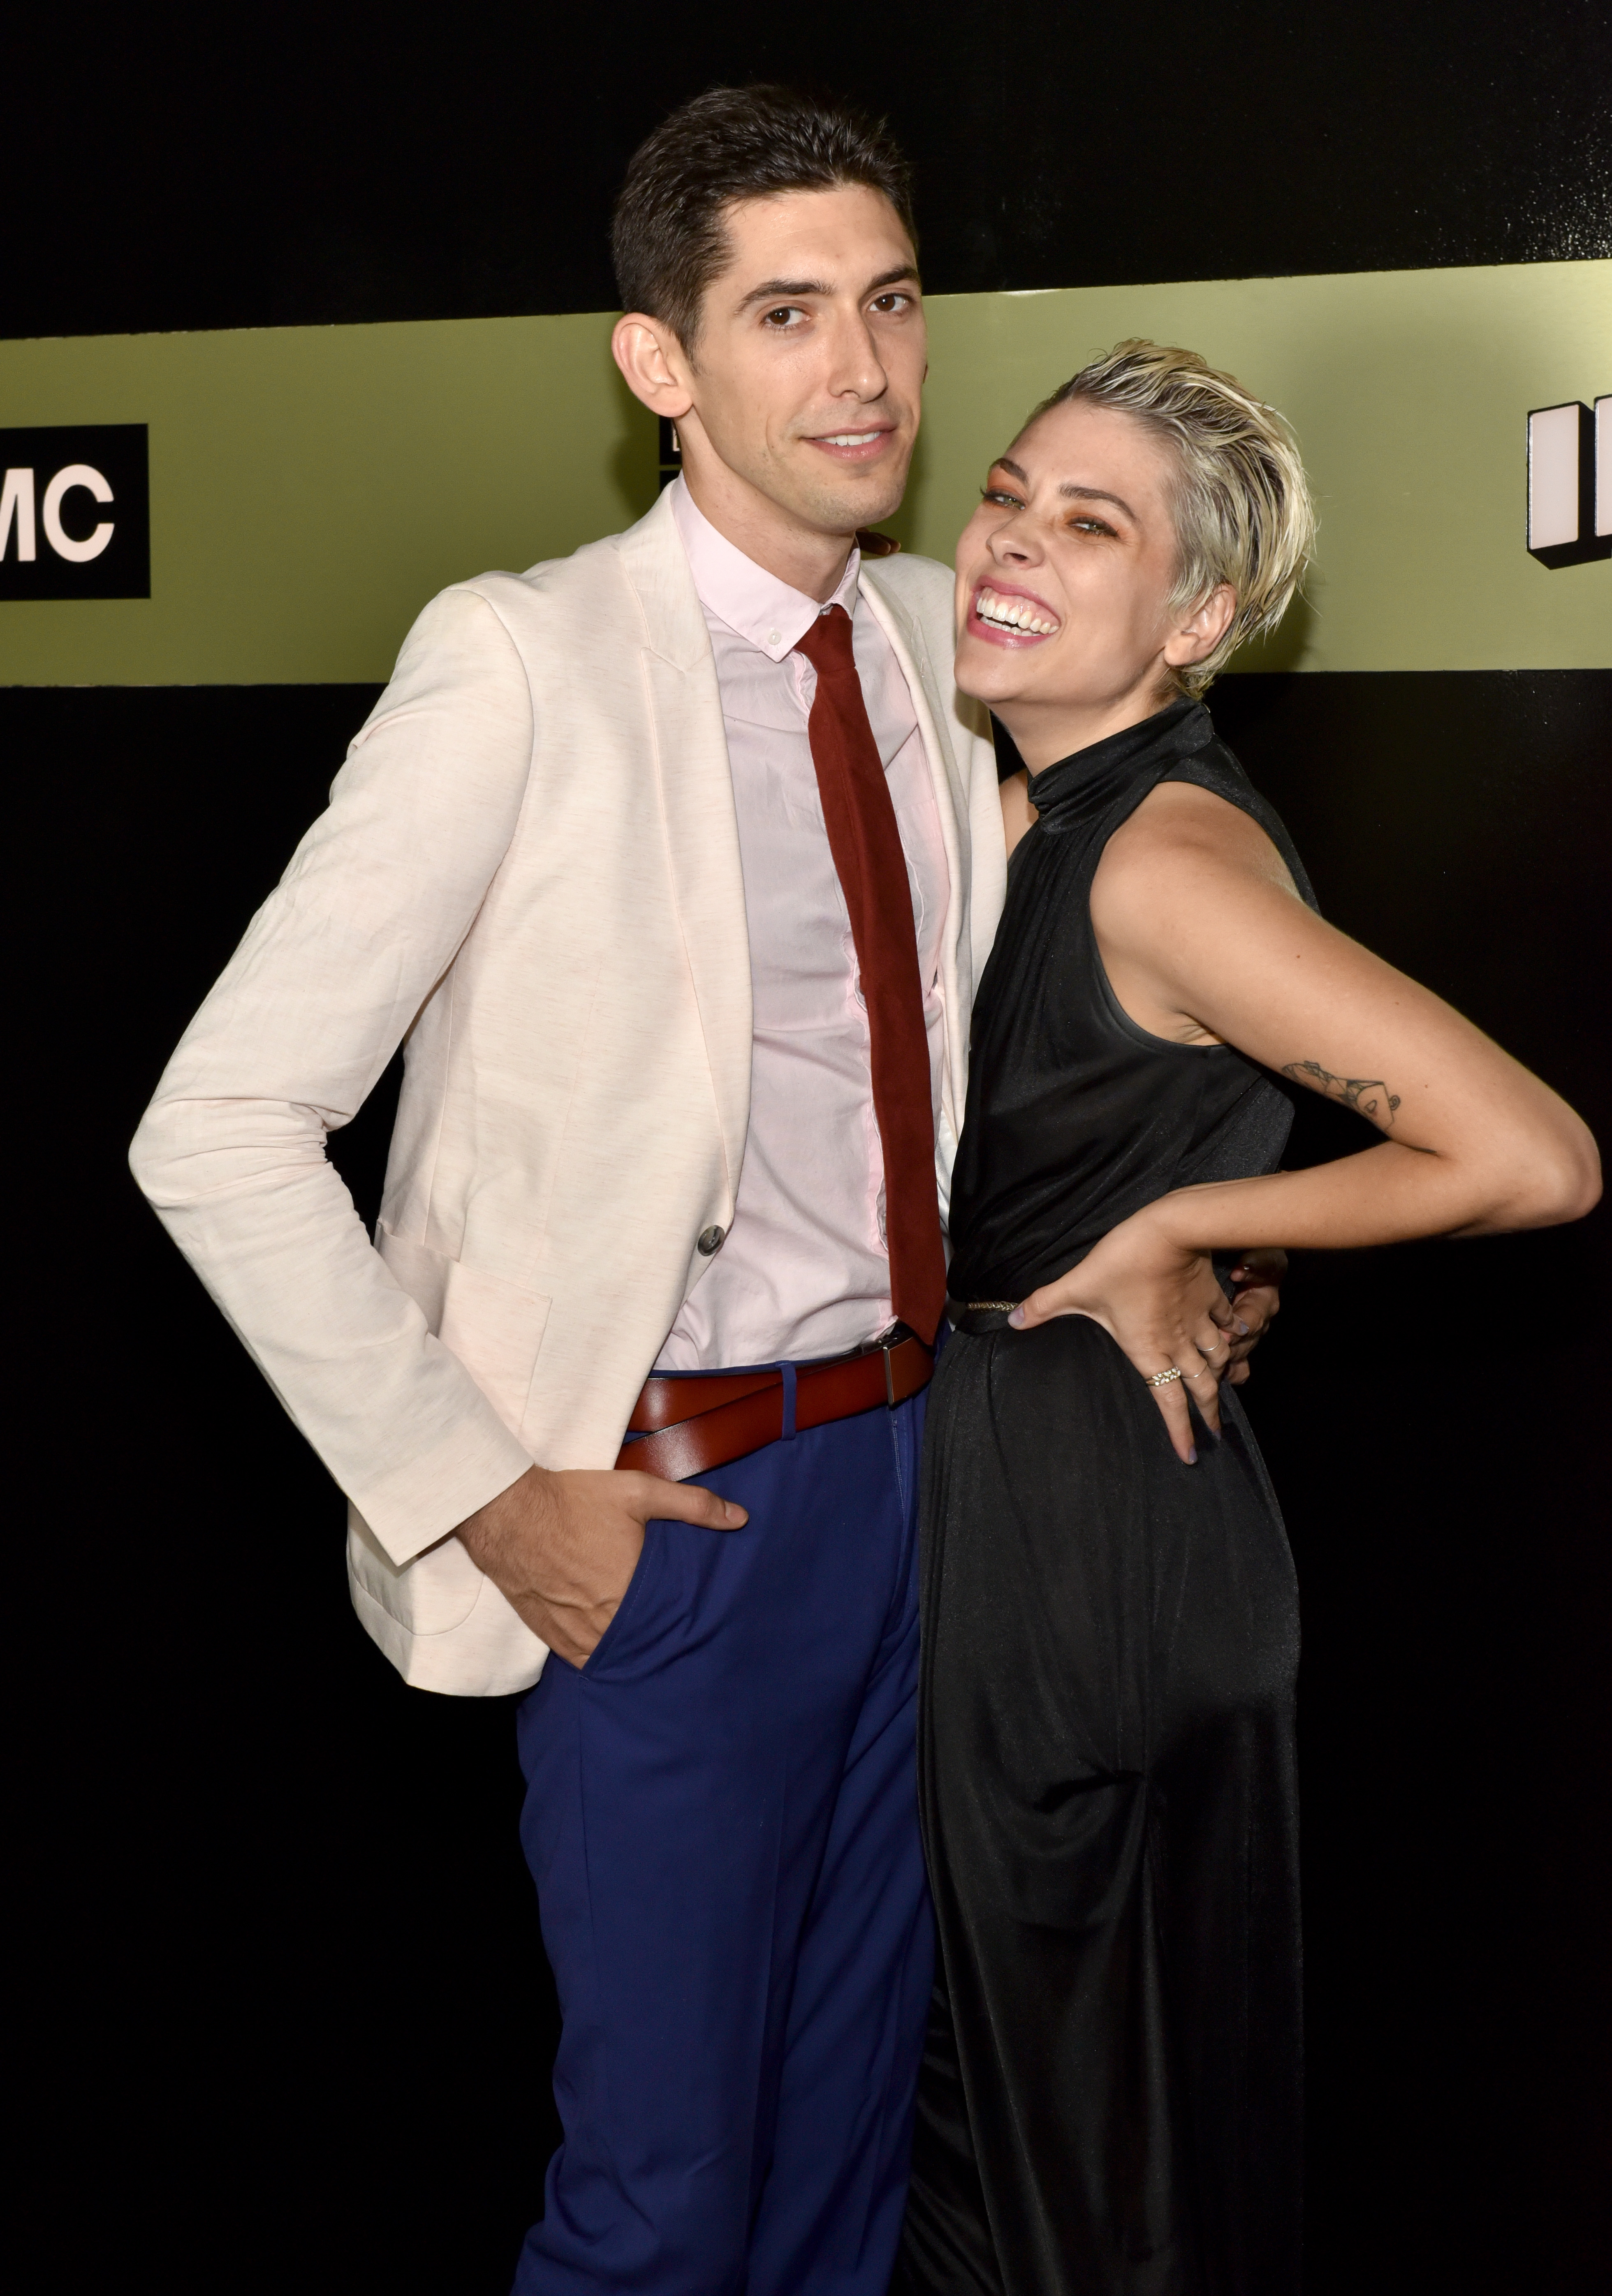 Screenwriter Max Landis (L) and Ani Baker attend AMC Networks 69th Primetime Emmy Awards after-party celebration at BOA Steakhouse on September 17, 2017 in West Hollywood, California. (Photo by Rodin Eckenroth/Getty Images)